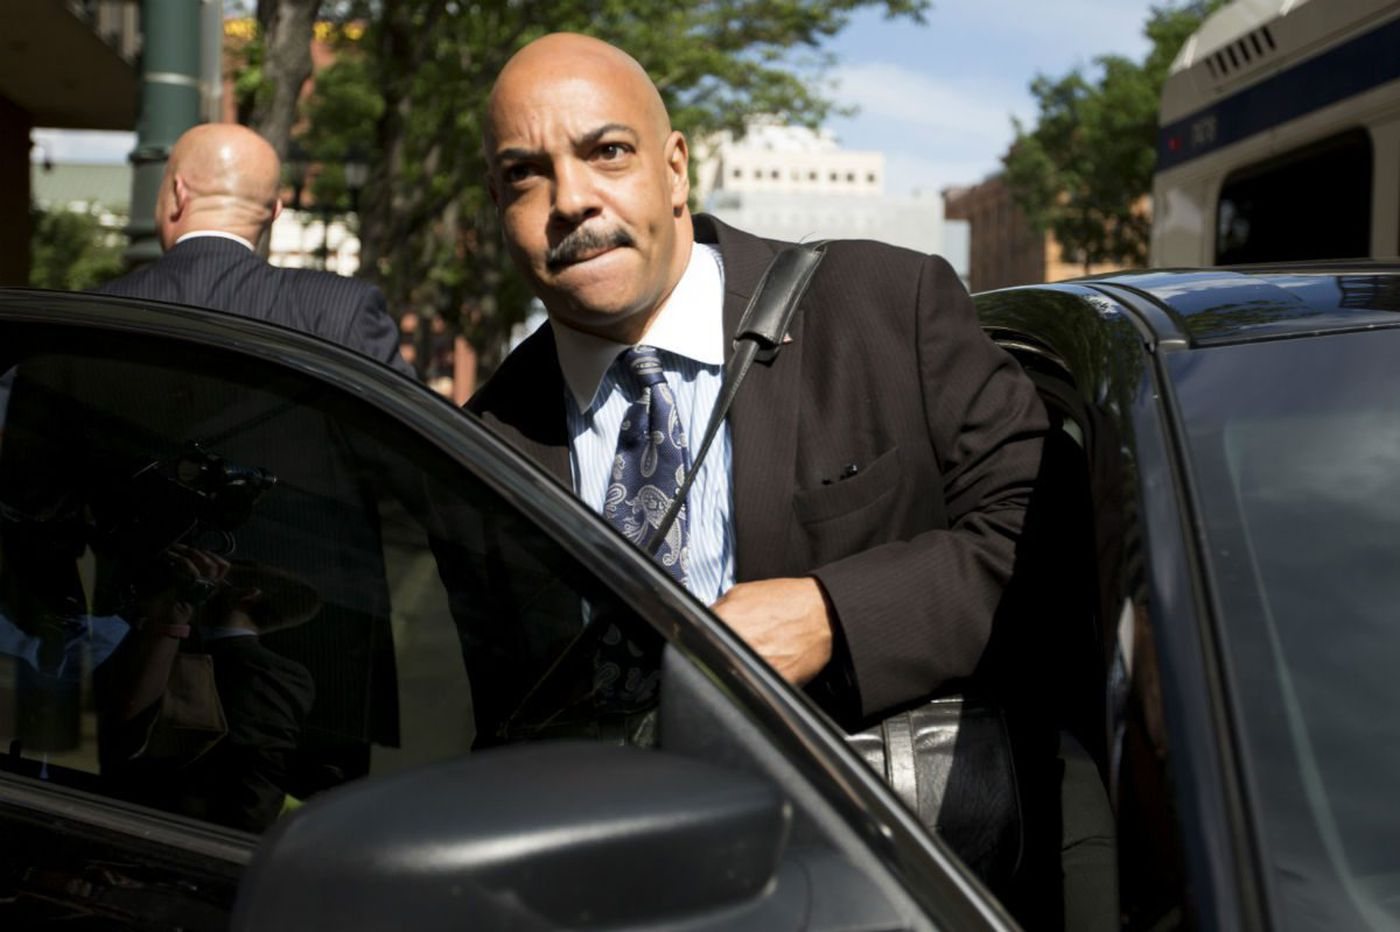 Nursing-home official: DA Seth Williams misused funds meant for his mother's care